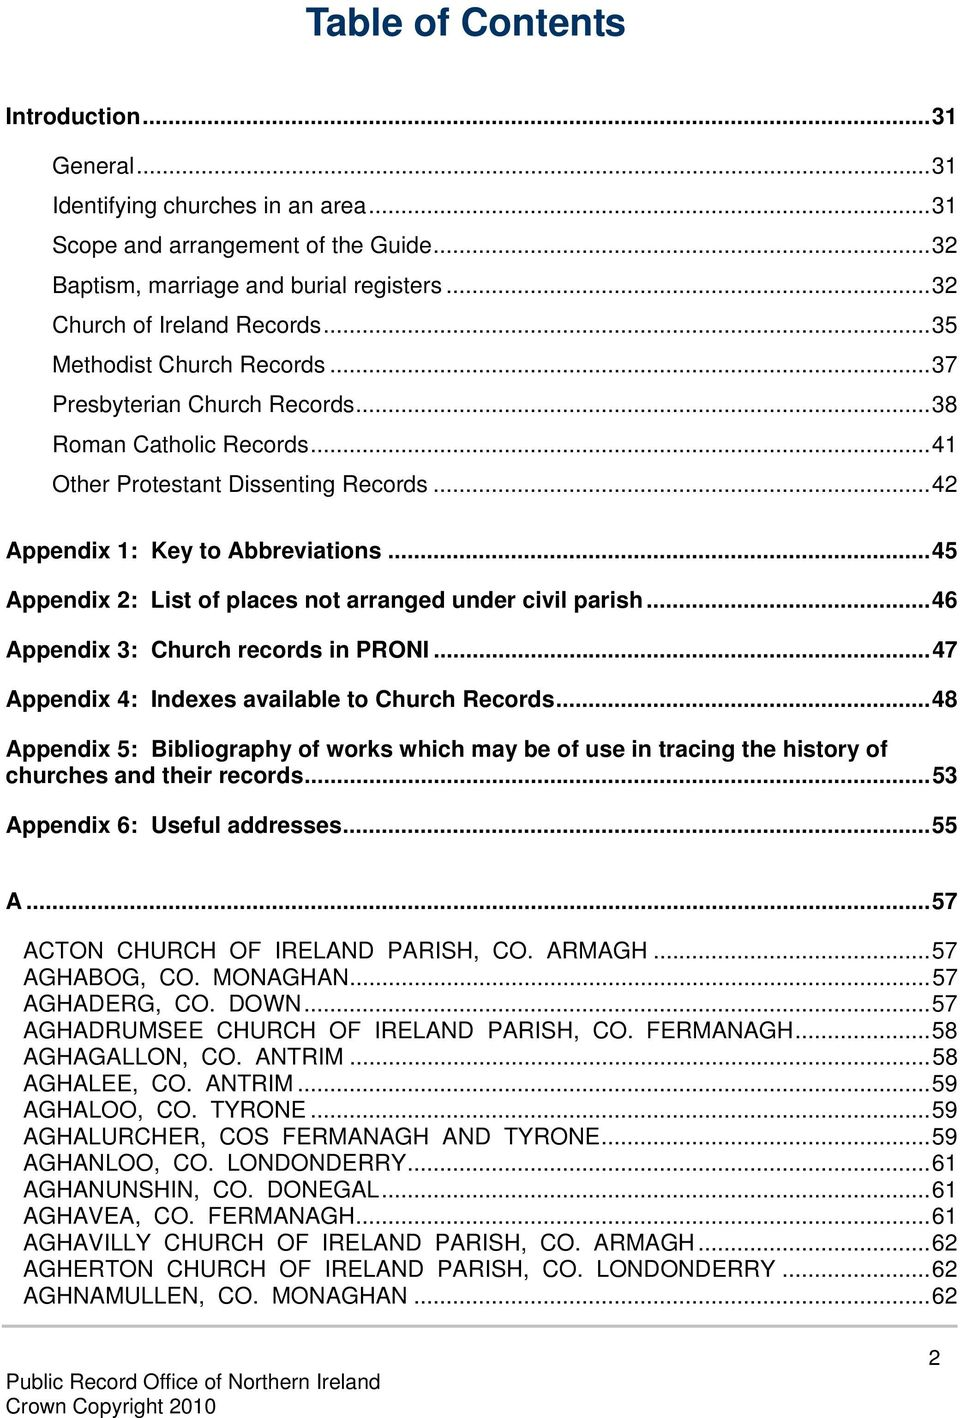 ..45 Appendix 2: List of places not arranged under civil parish...46 Appendix 3: Church records in PRONI...47 Appendix 4: Indexes available to Church Records.